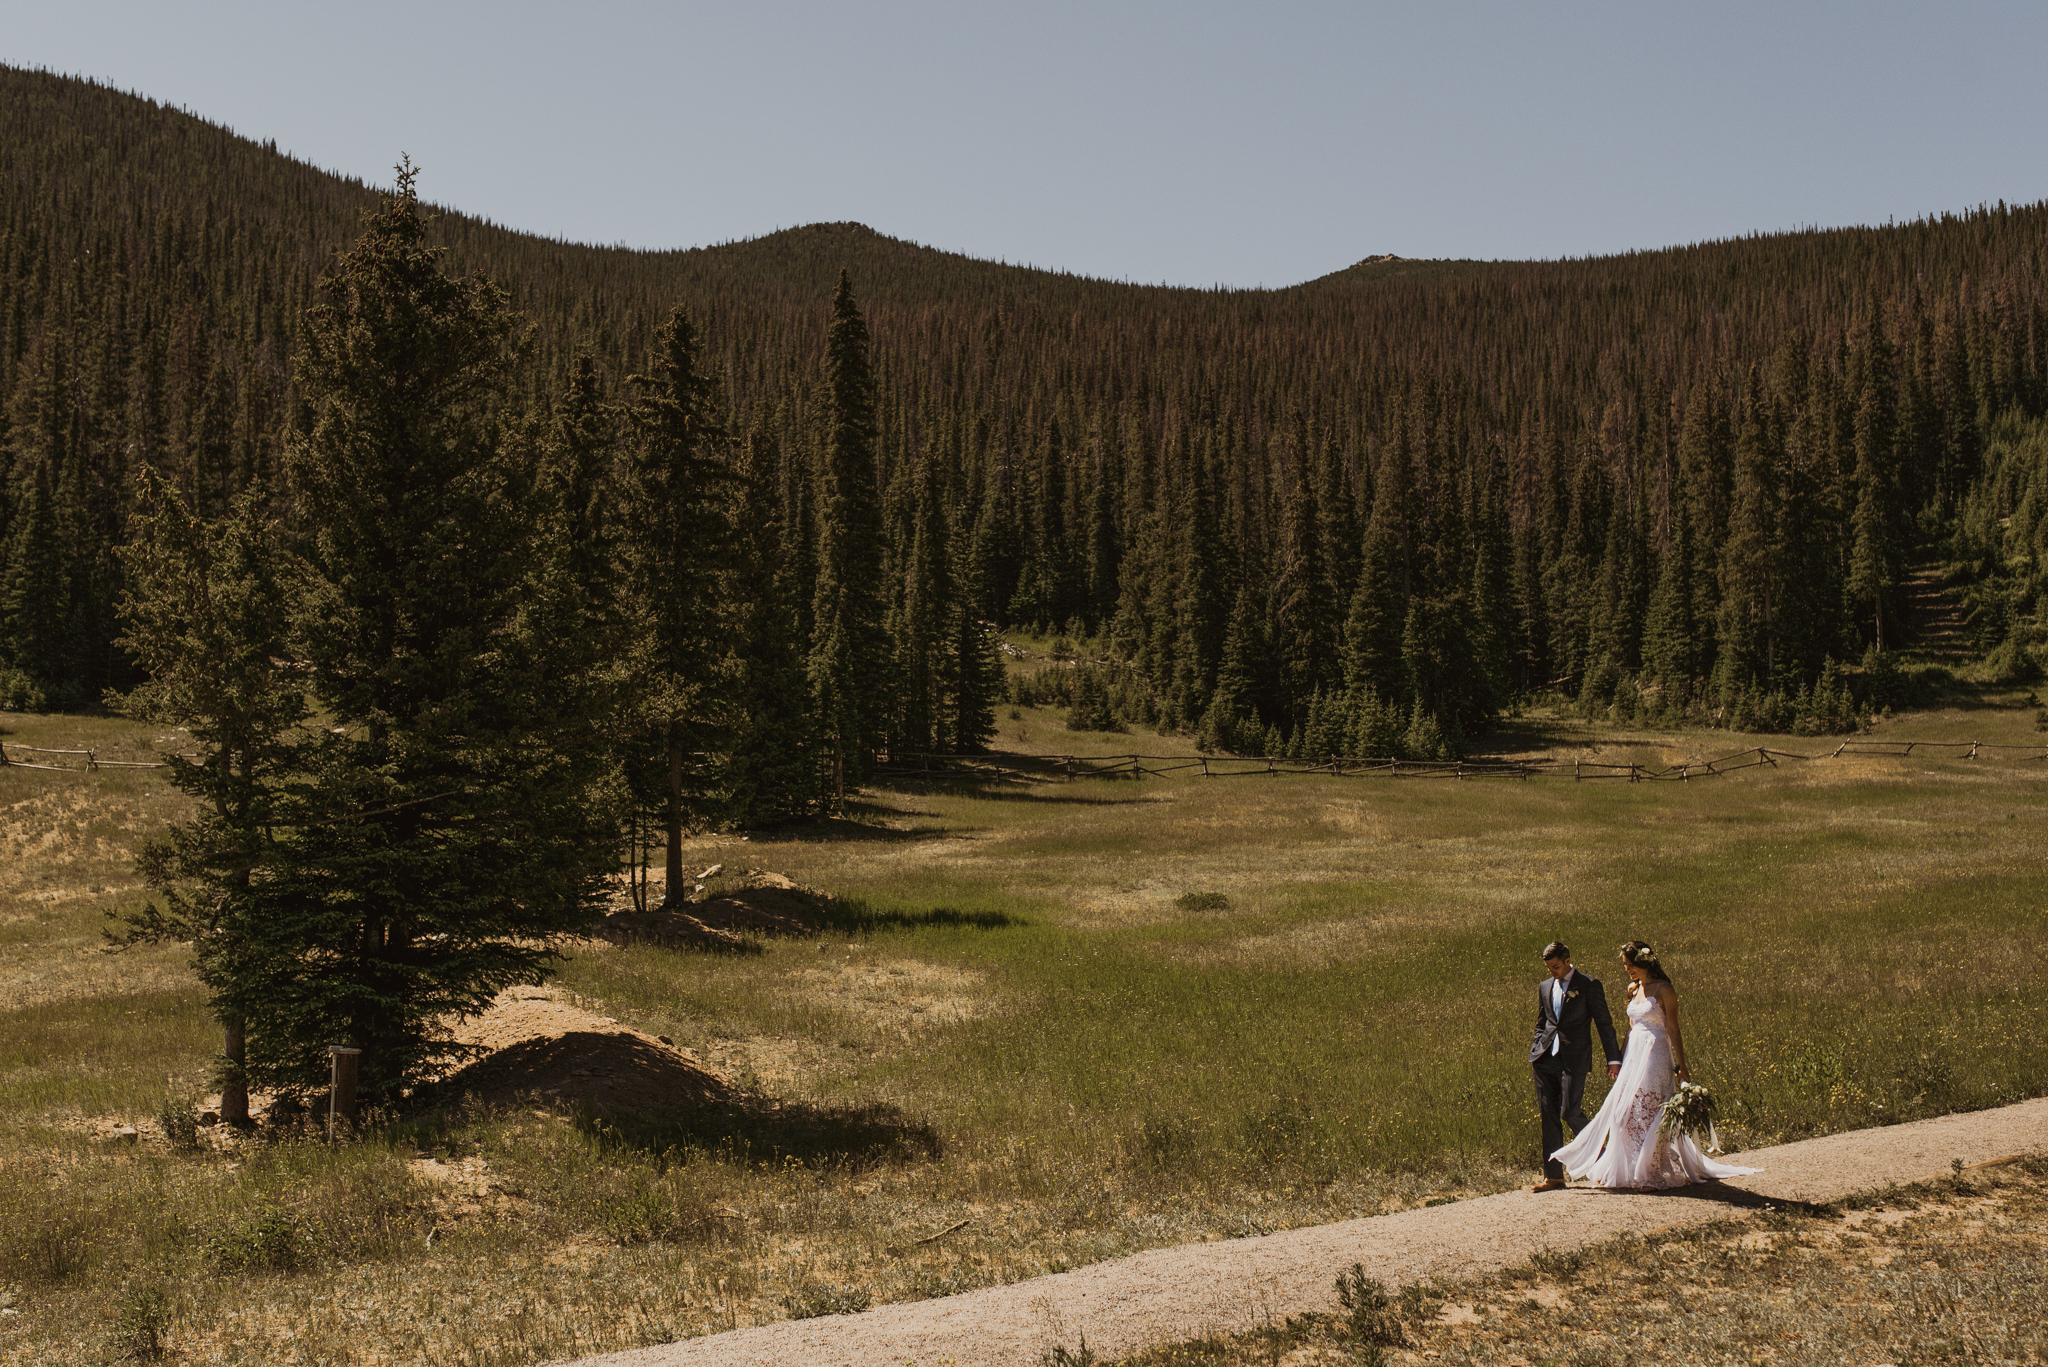 ©Isaiah + Taylor Photography - Estes National Park Adventure Elopement, Colorado Rockies-79.jpg